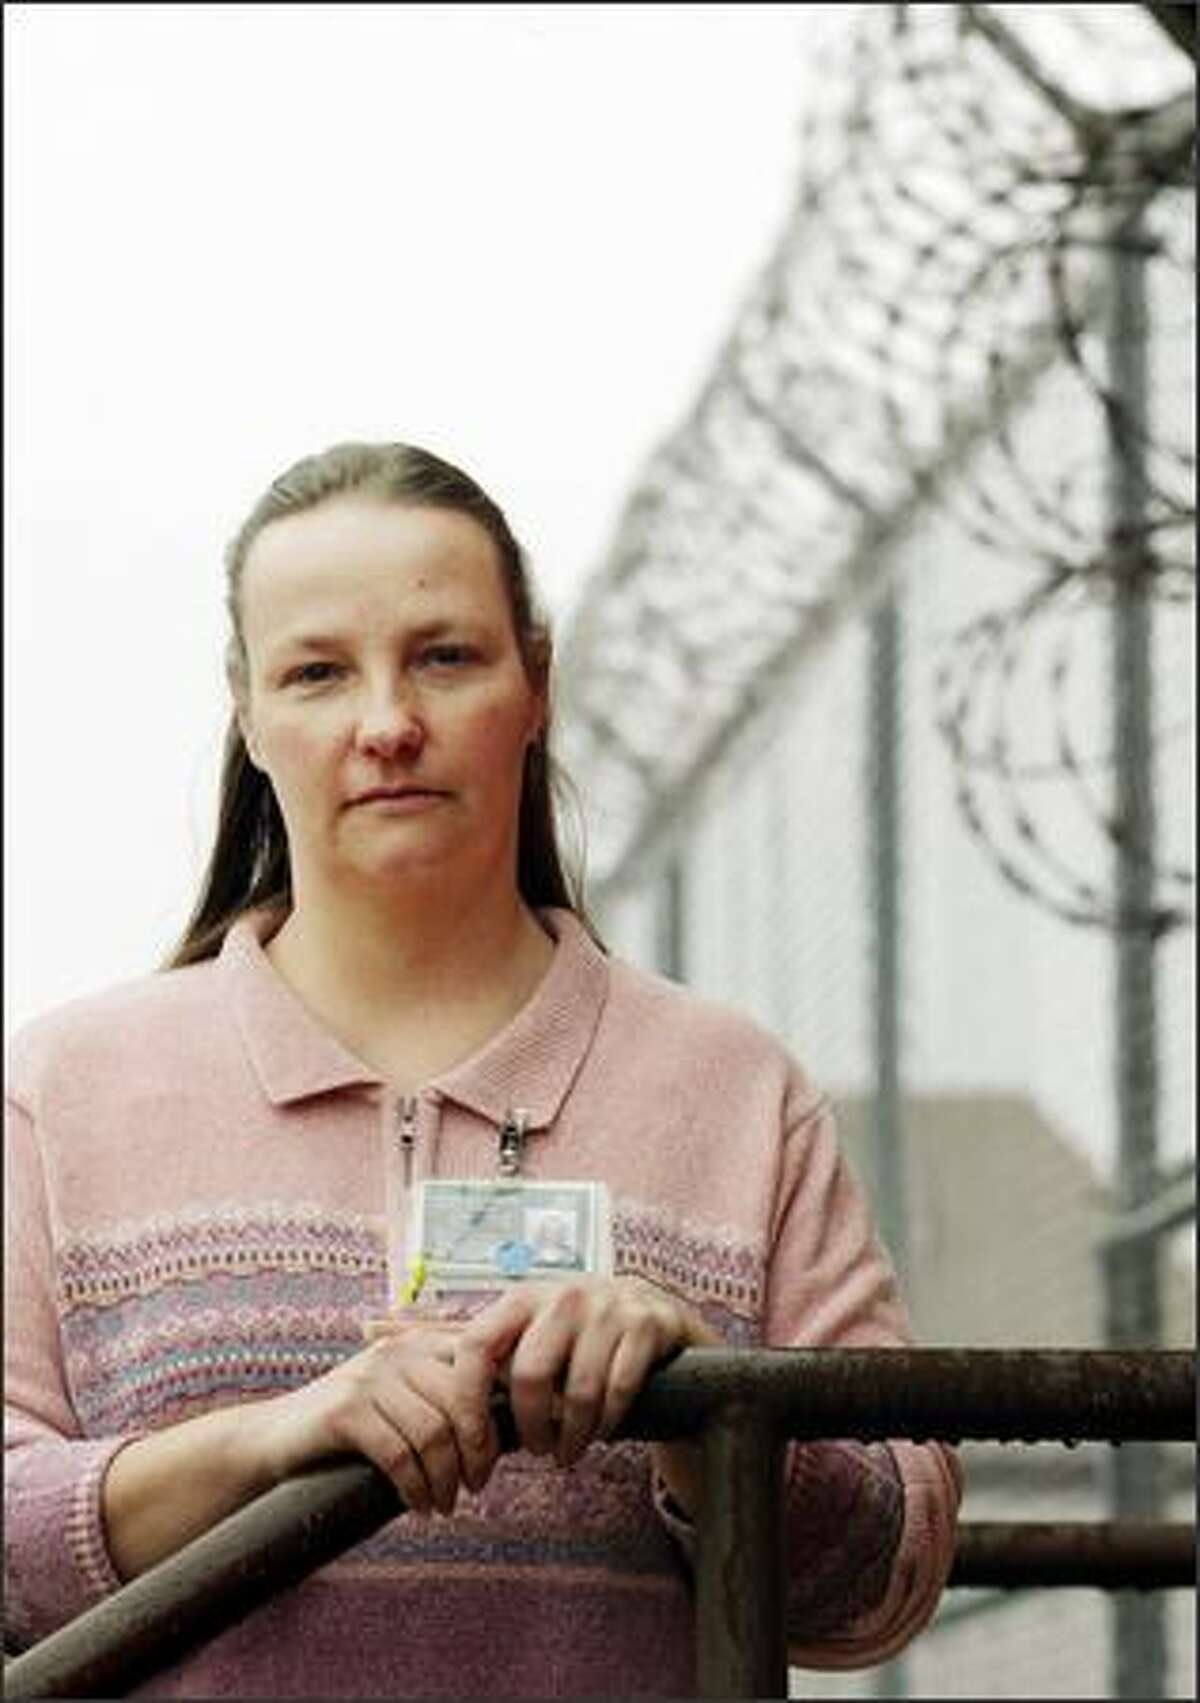 Kyann Cardwell clings to the hope that mistakes made by forensic scientist Arnold Melnikoff could free her from Pine Lodge minimum-security prison in Medical Lake. She is serving a six-year sentence for manufacturing methamphetamine.